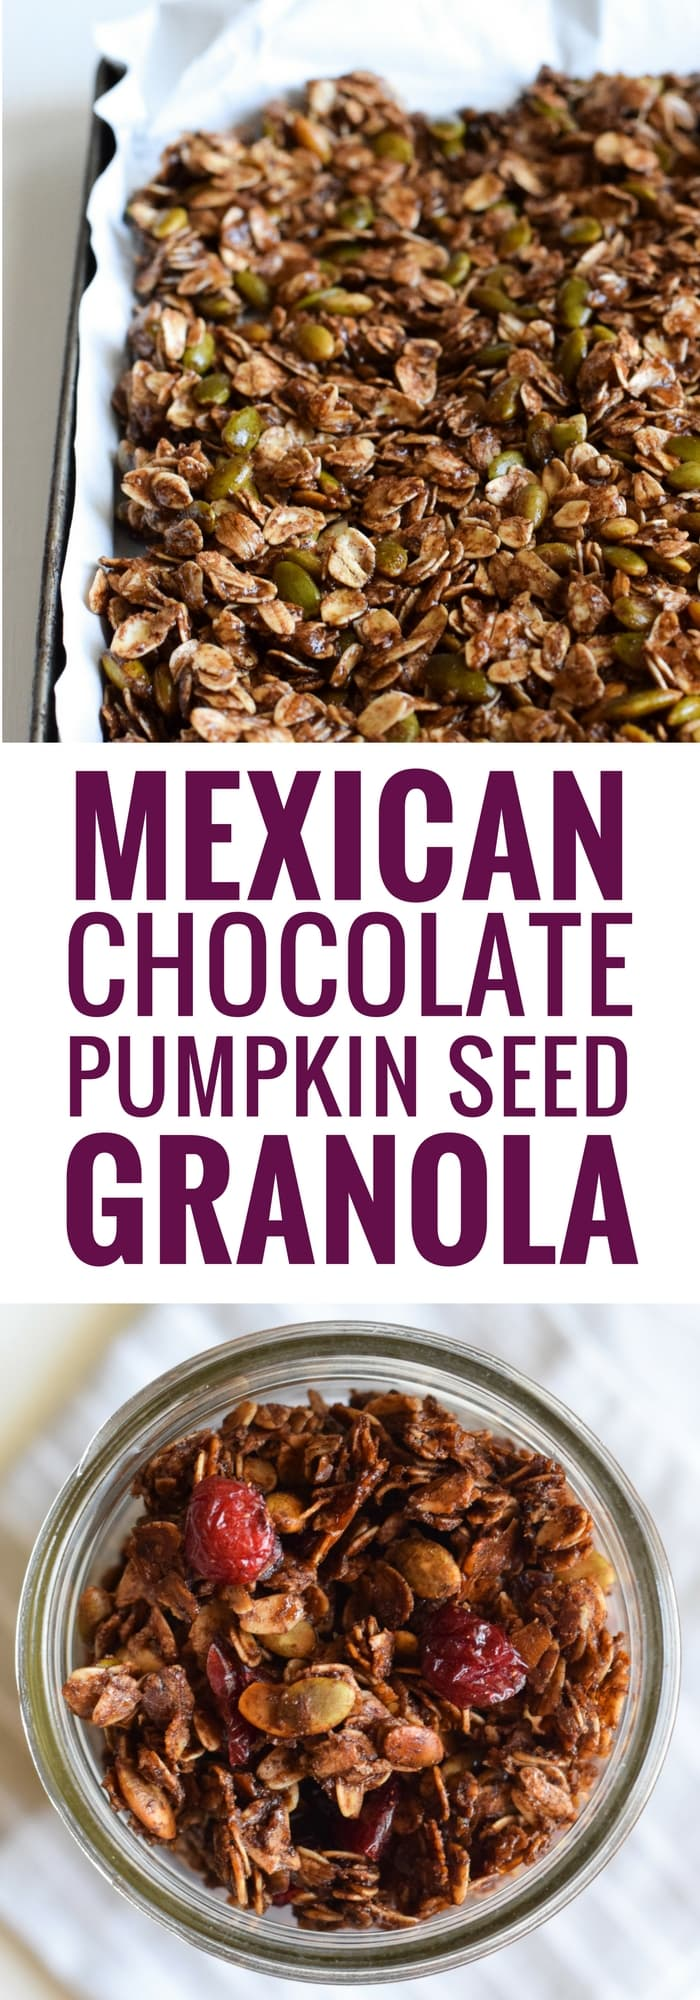 Made with wholesome rolled oats, Abuelita Mexican chocolate, pumpkin seeds and dried cranberries, this Mexican Chocolate Pumpkin Seed Granola is a delicious breakfast or snack any time of the day! (gluten free, vegetarian)